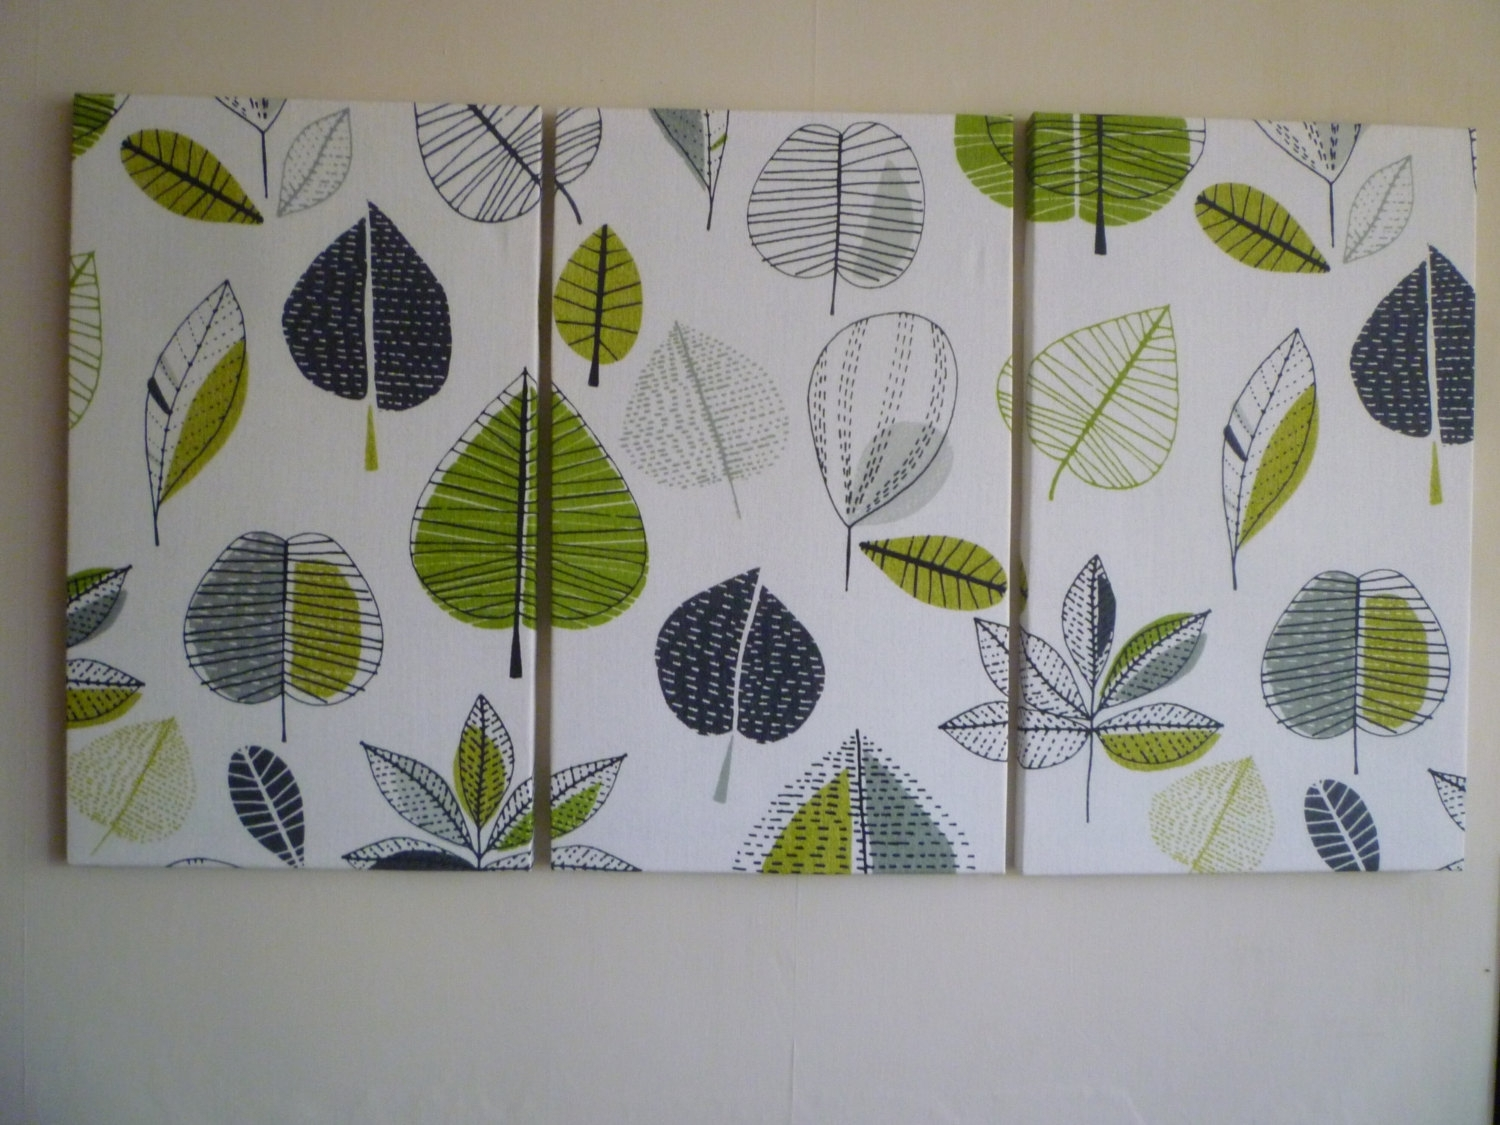 Wall Art Designs: Fabric Wall Art Big Lime Green Fabric Wall Art Inside Latest Diy Fabric Wall Art Panels (Gallery 14 of 15)